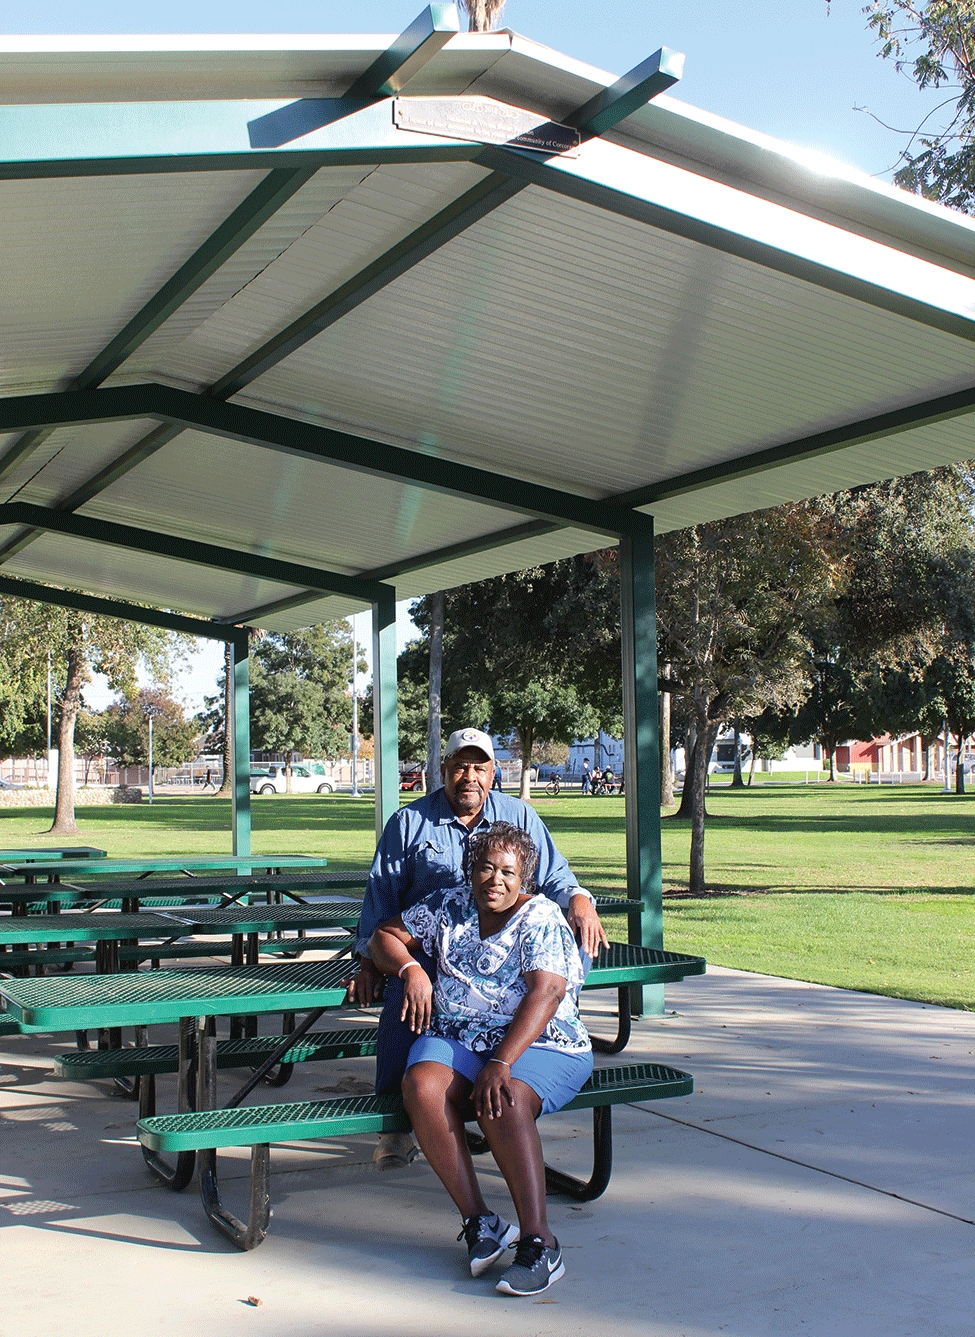 Park pavilion dedicated to Nate and Vivian Butler